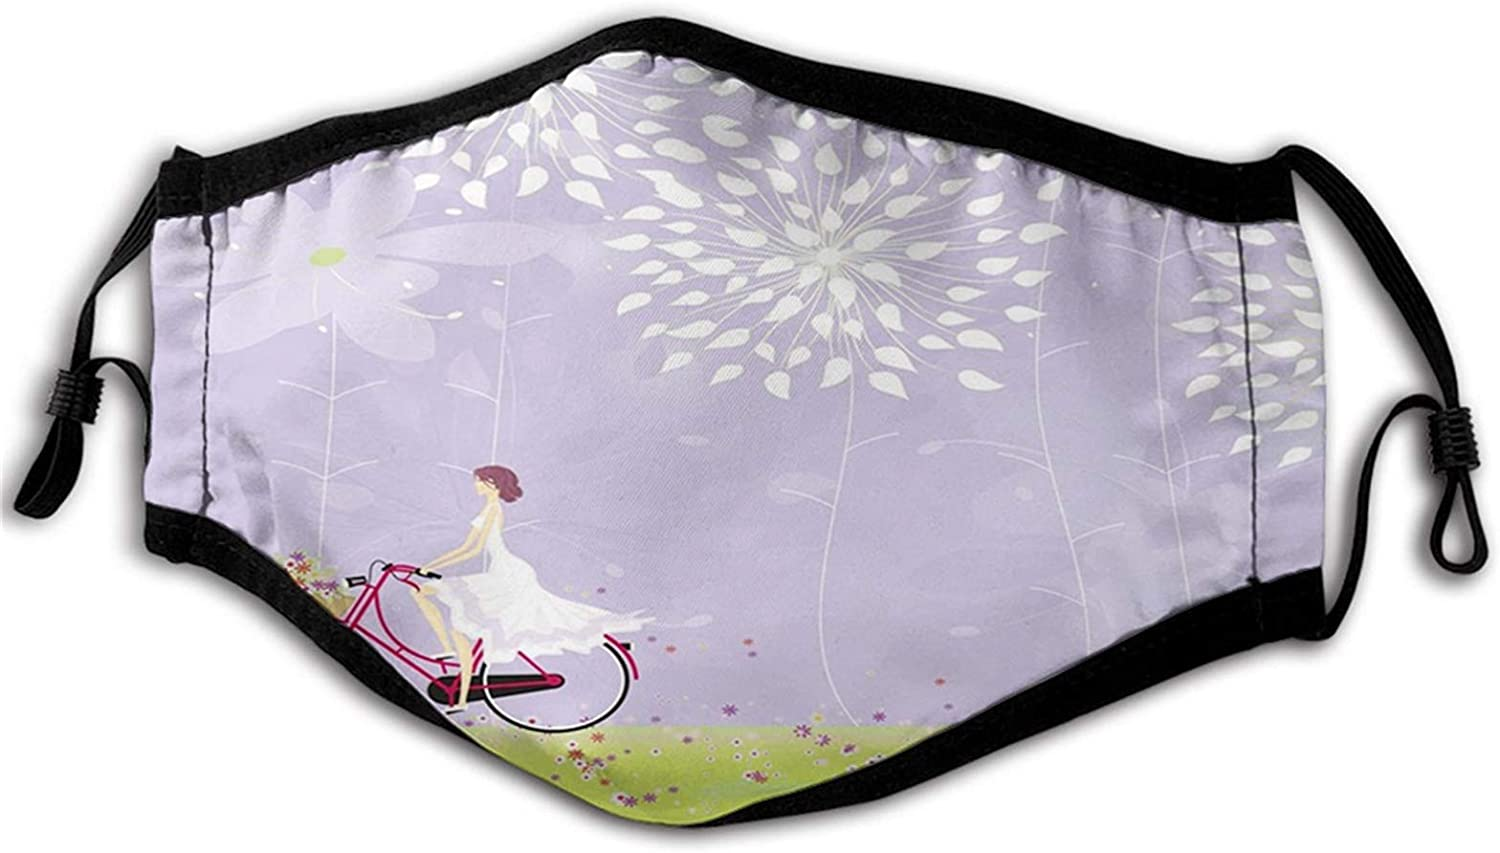 Cartoon, Girl Riding Bike Windy Weather in The Garden with Grass Artwork,Lavender Fruits Green White Proof Windproof Face Mask,Reusable,Washable Cloth,Face Cover,Cover for Adult